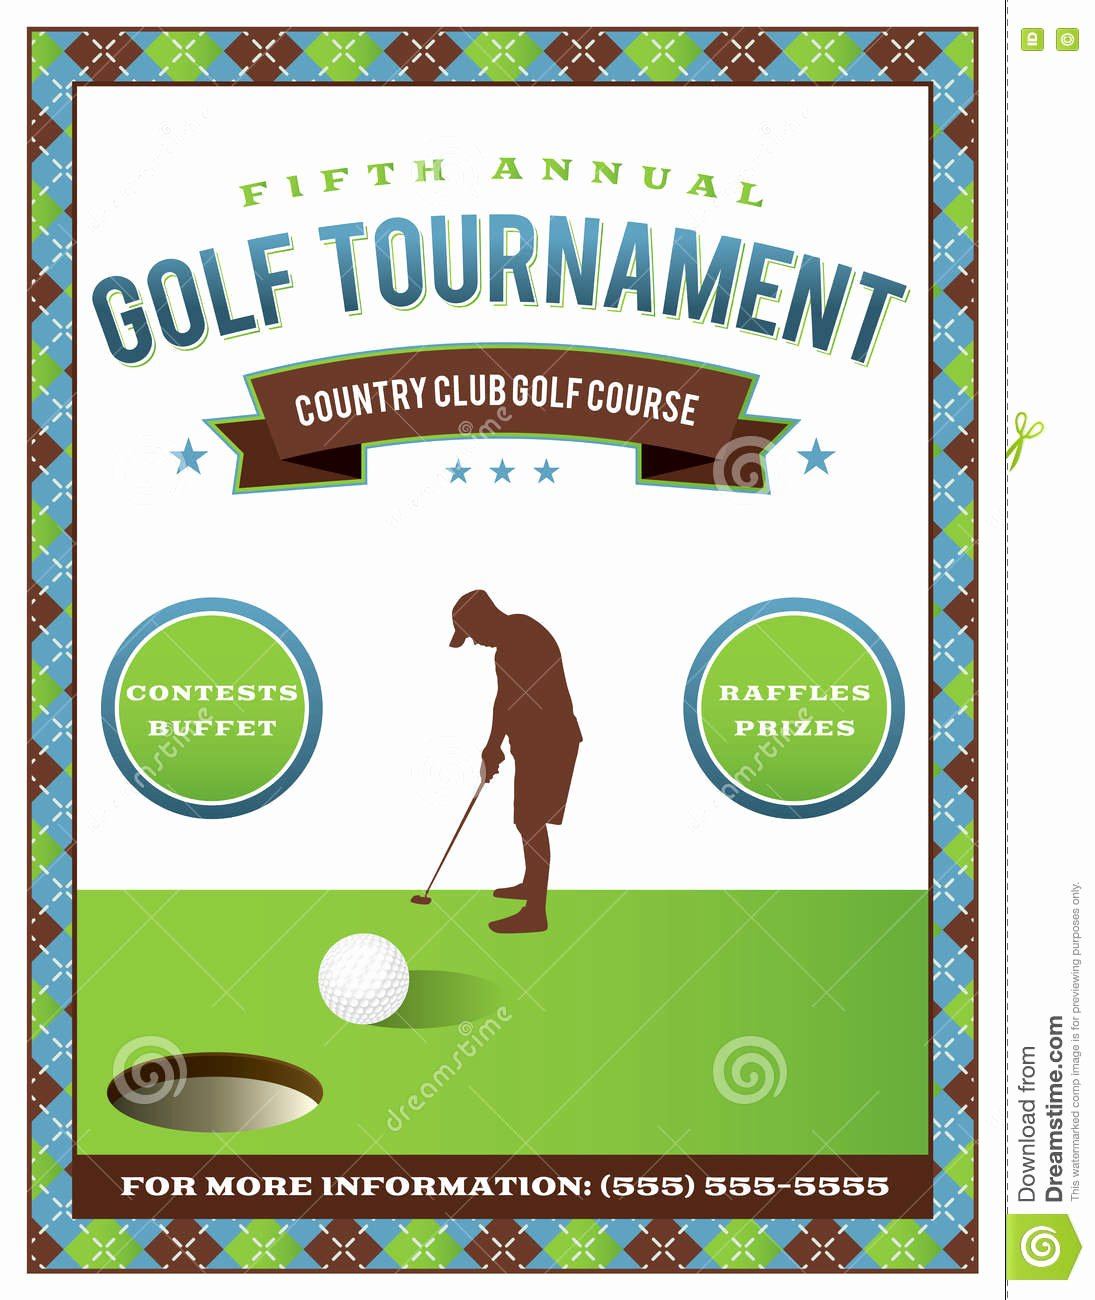 Golf Scramble Flyer Template Unique Golf tournament Flyer Template Stock Vector Illustration